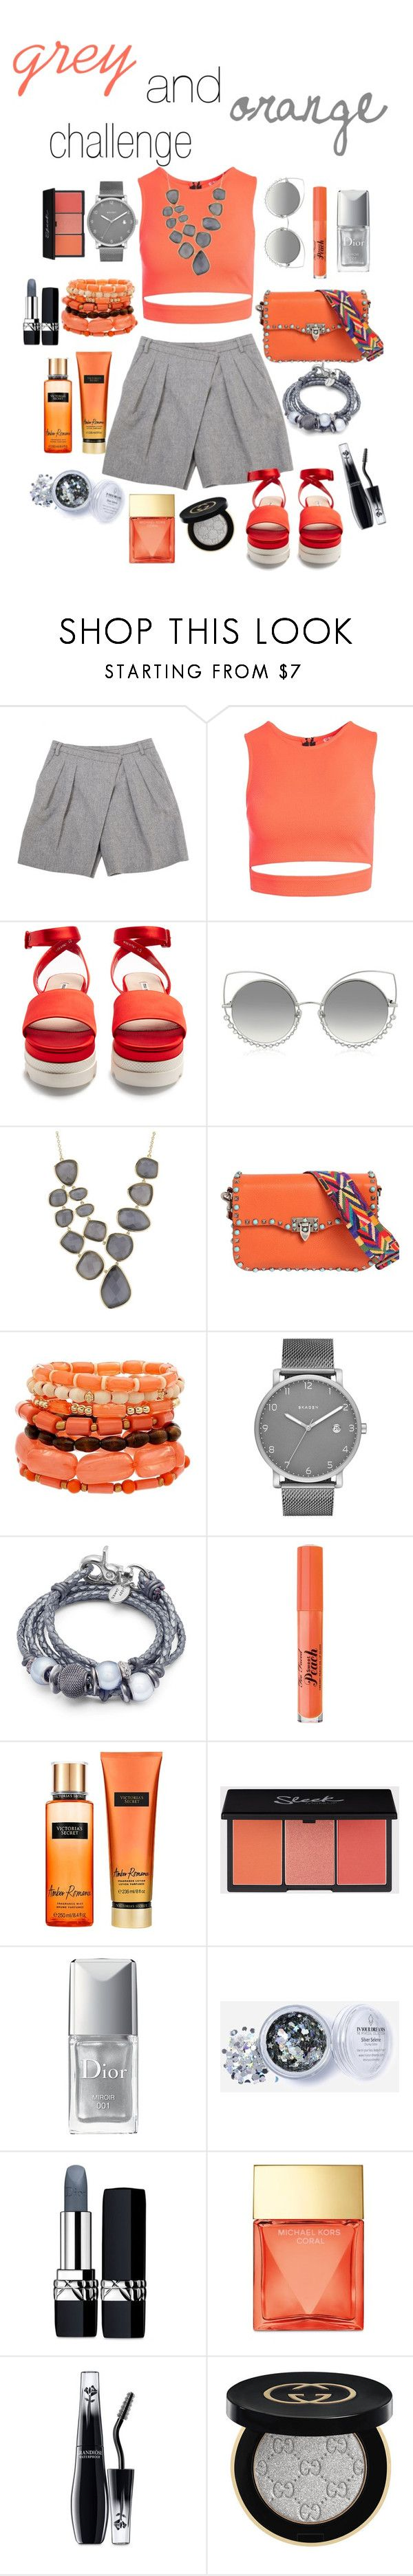 """grey and orange challenge"" by beautytime101 ❤ liked on Polyvore featuring Givenchy, Sans Souci, Miu Miu, Marc Jacobs, Marcia Moran, Valentino, Skagen, Lizzy James, Too Faced Cosmetics and Victoria's Secret"